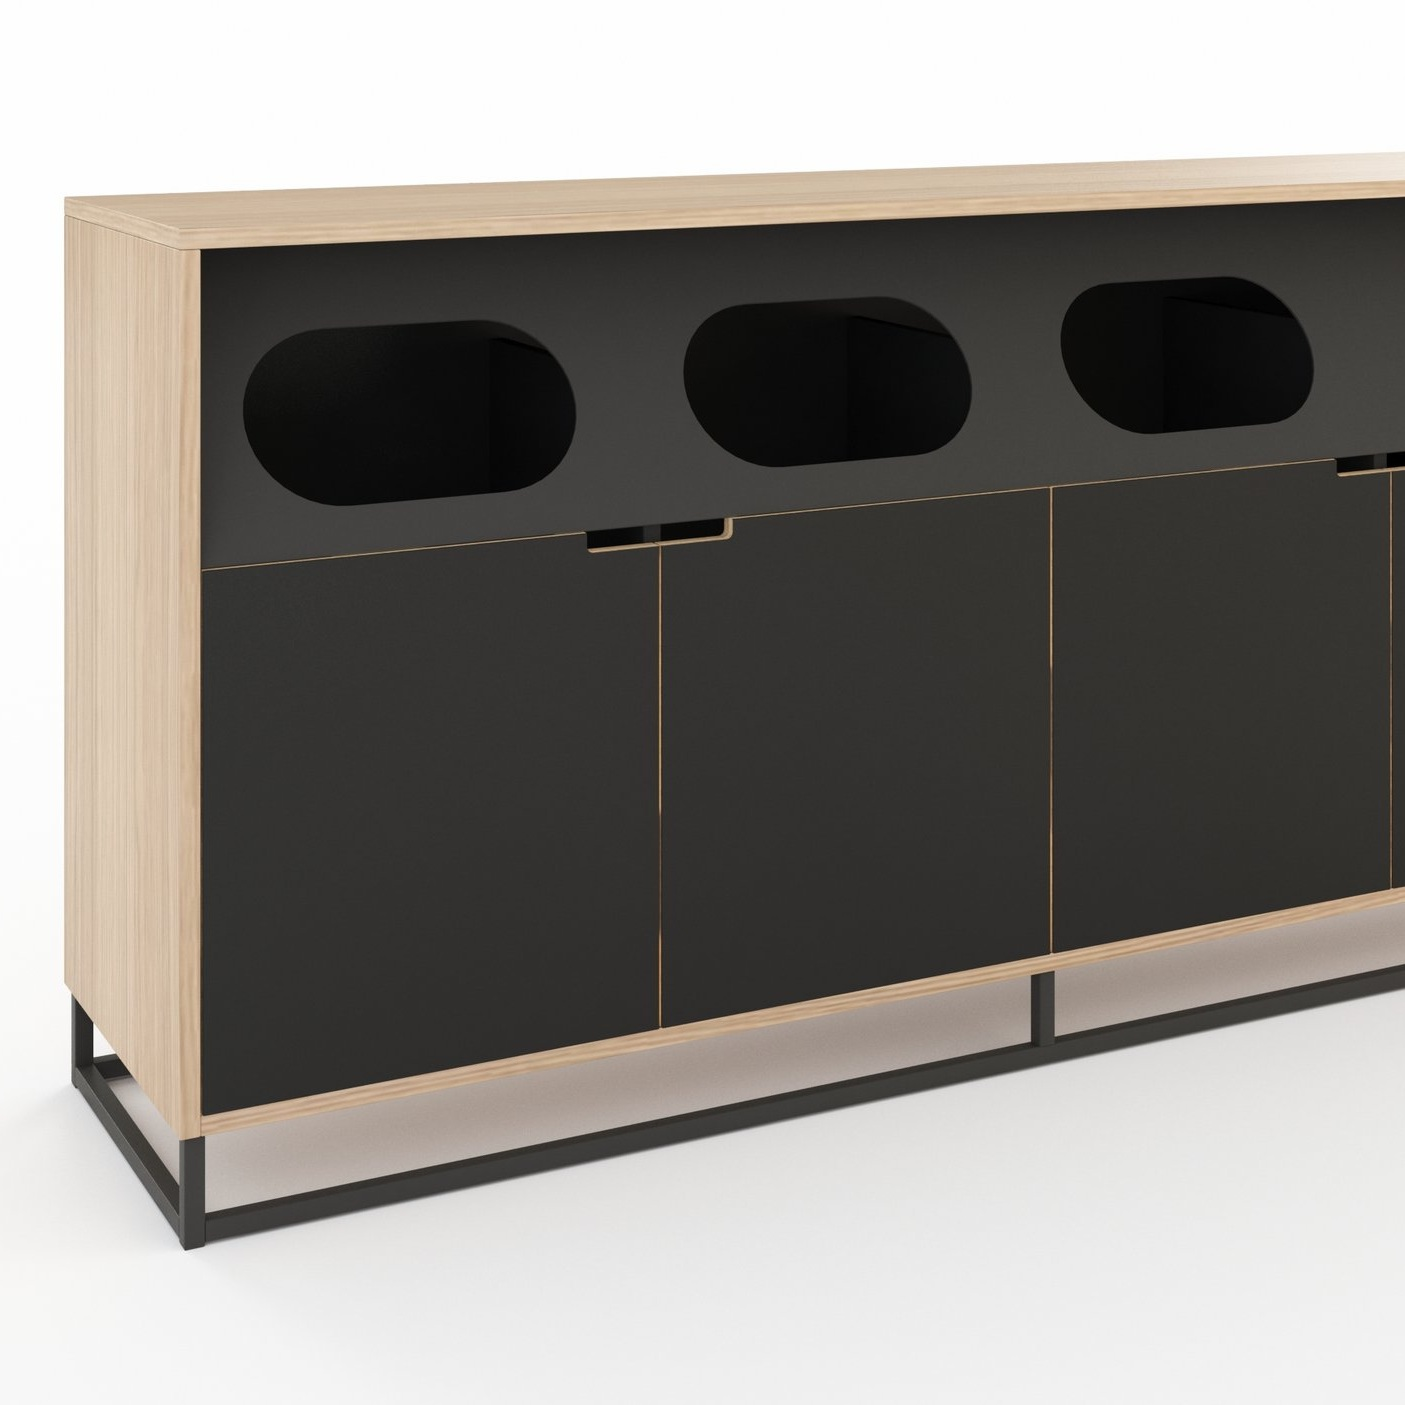 Waste Recycle_Front Loading 3_Sled Square_72W_White Oak_Black Laminate_Midnight.jpg